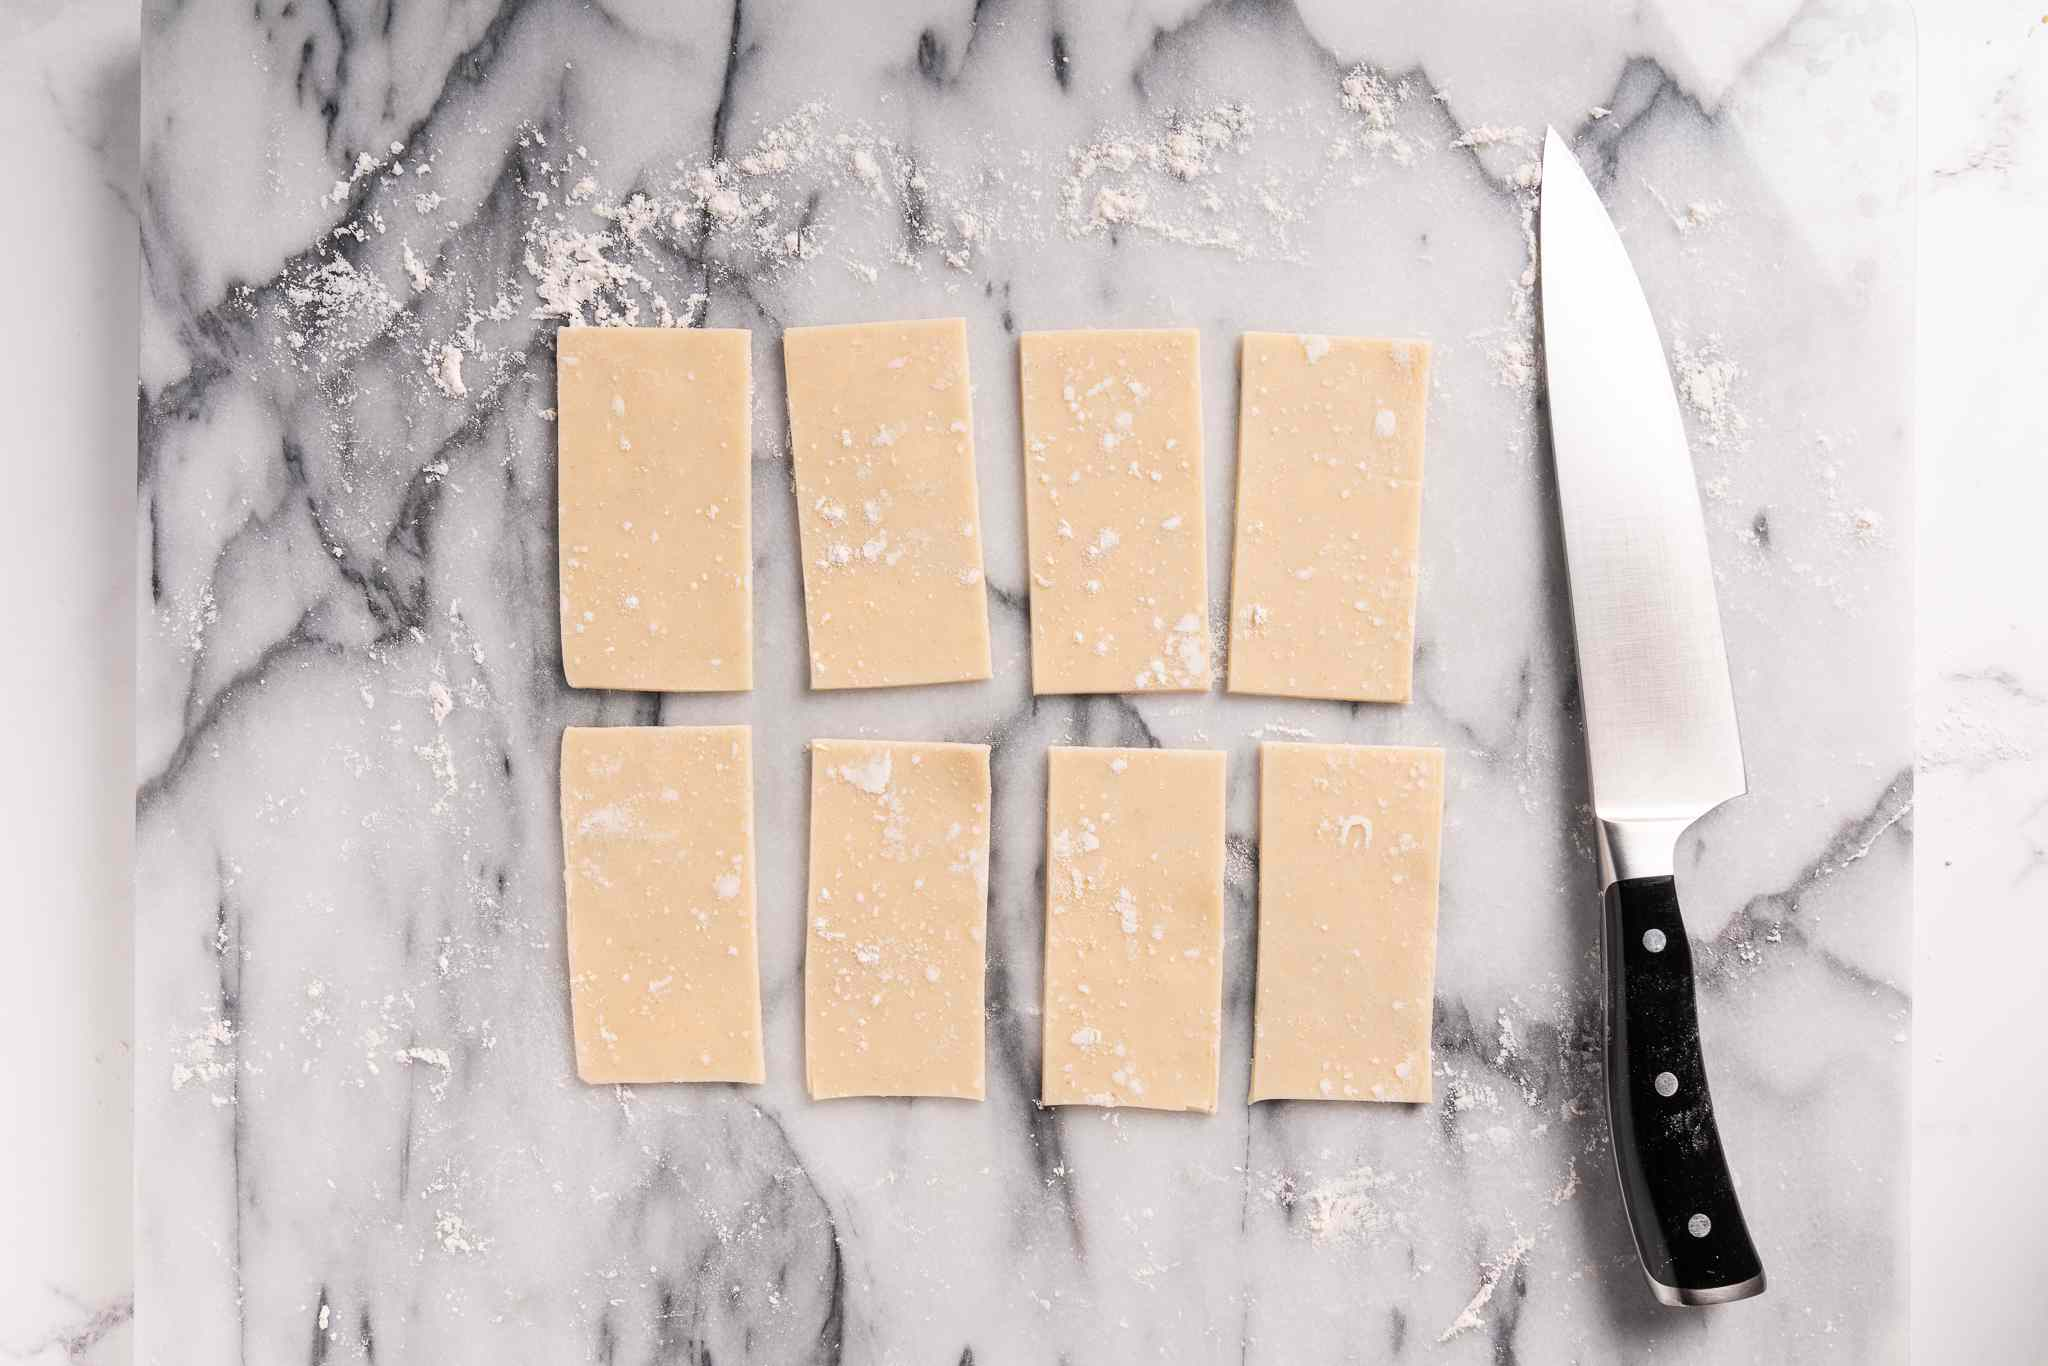 Pie crust cut into rectangles with a knife